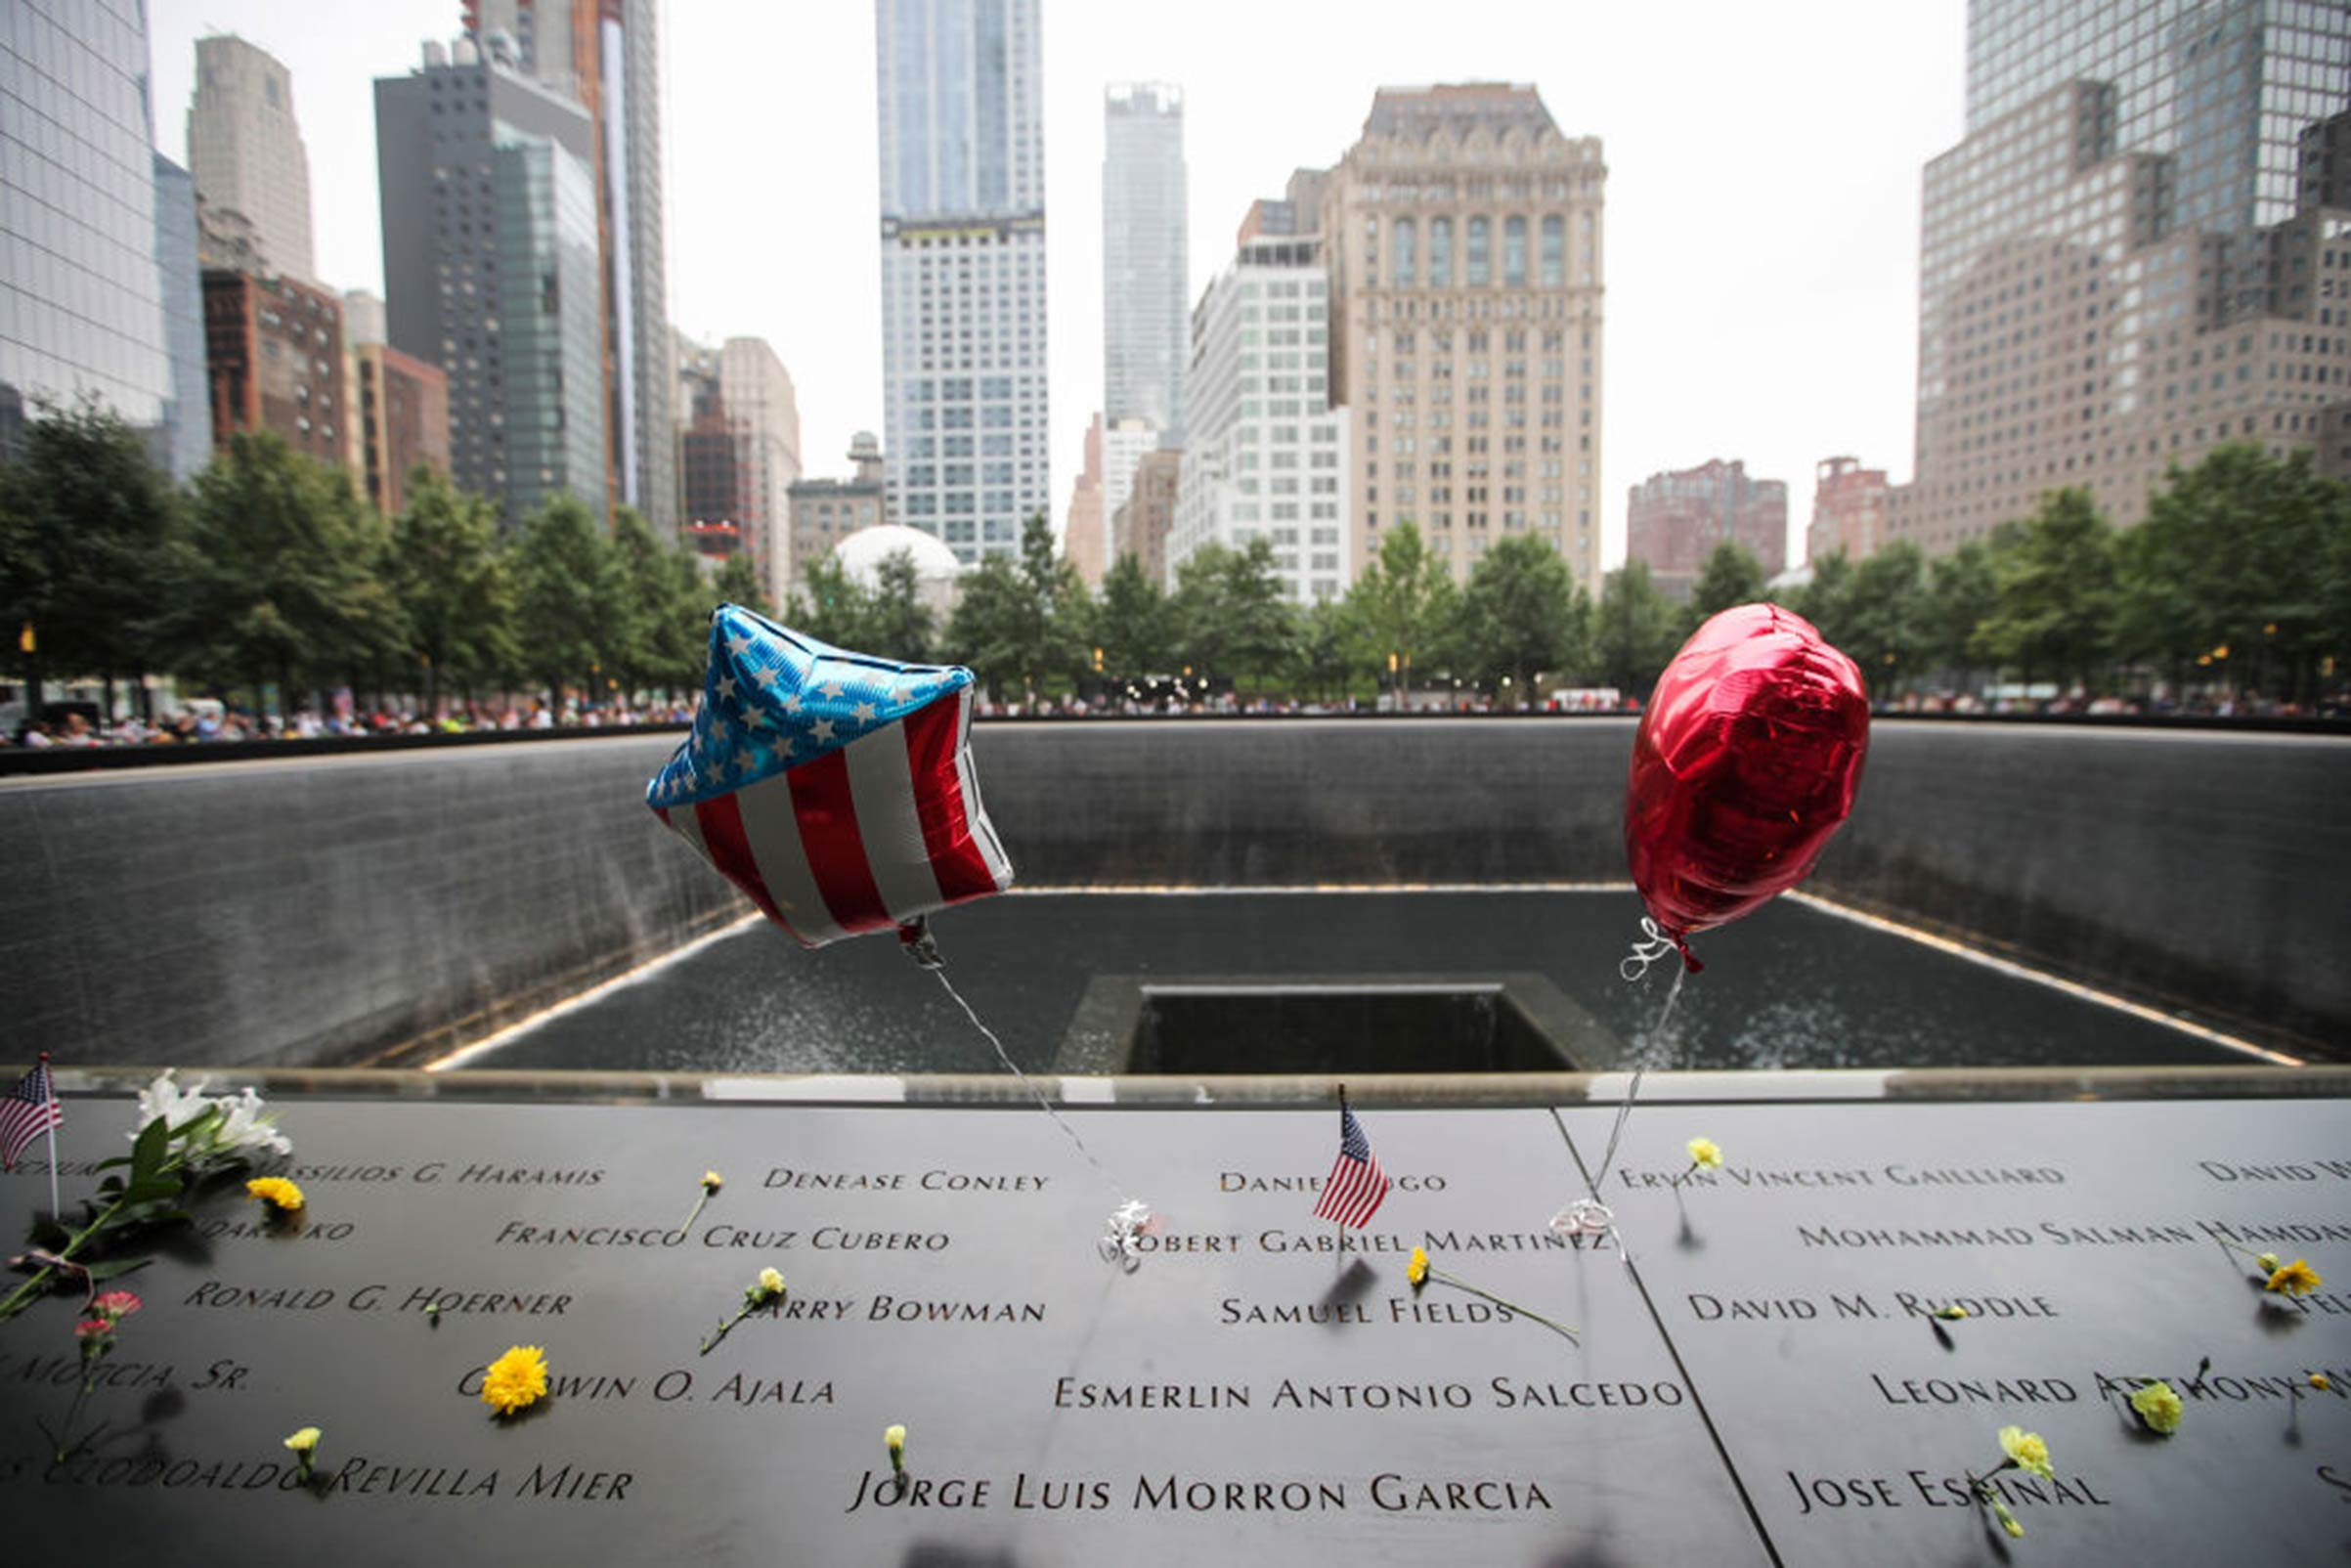 Flowers and balloons are placed on plates on which the names of 9/11 victims were inscribed around the South Pool at the 9/11 Memorial and Museum in New York City on Sept. 11, 2018.